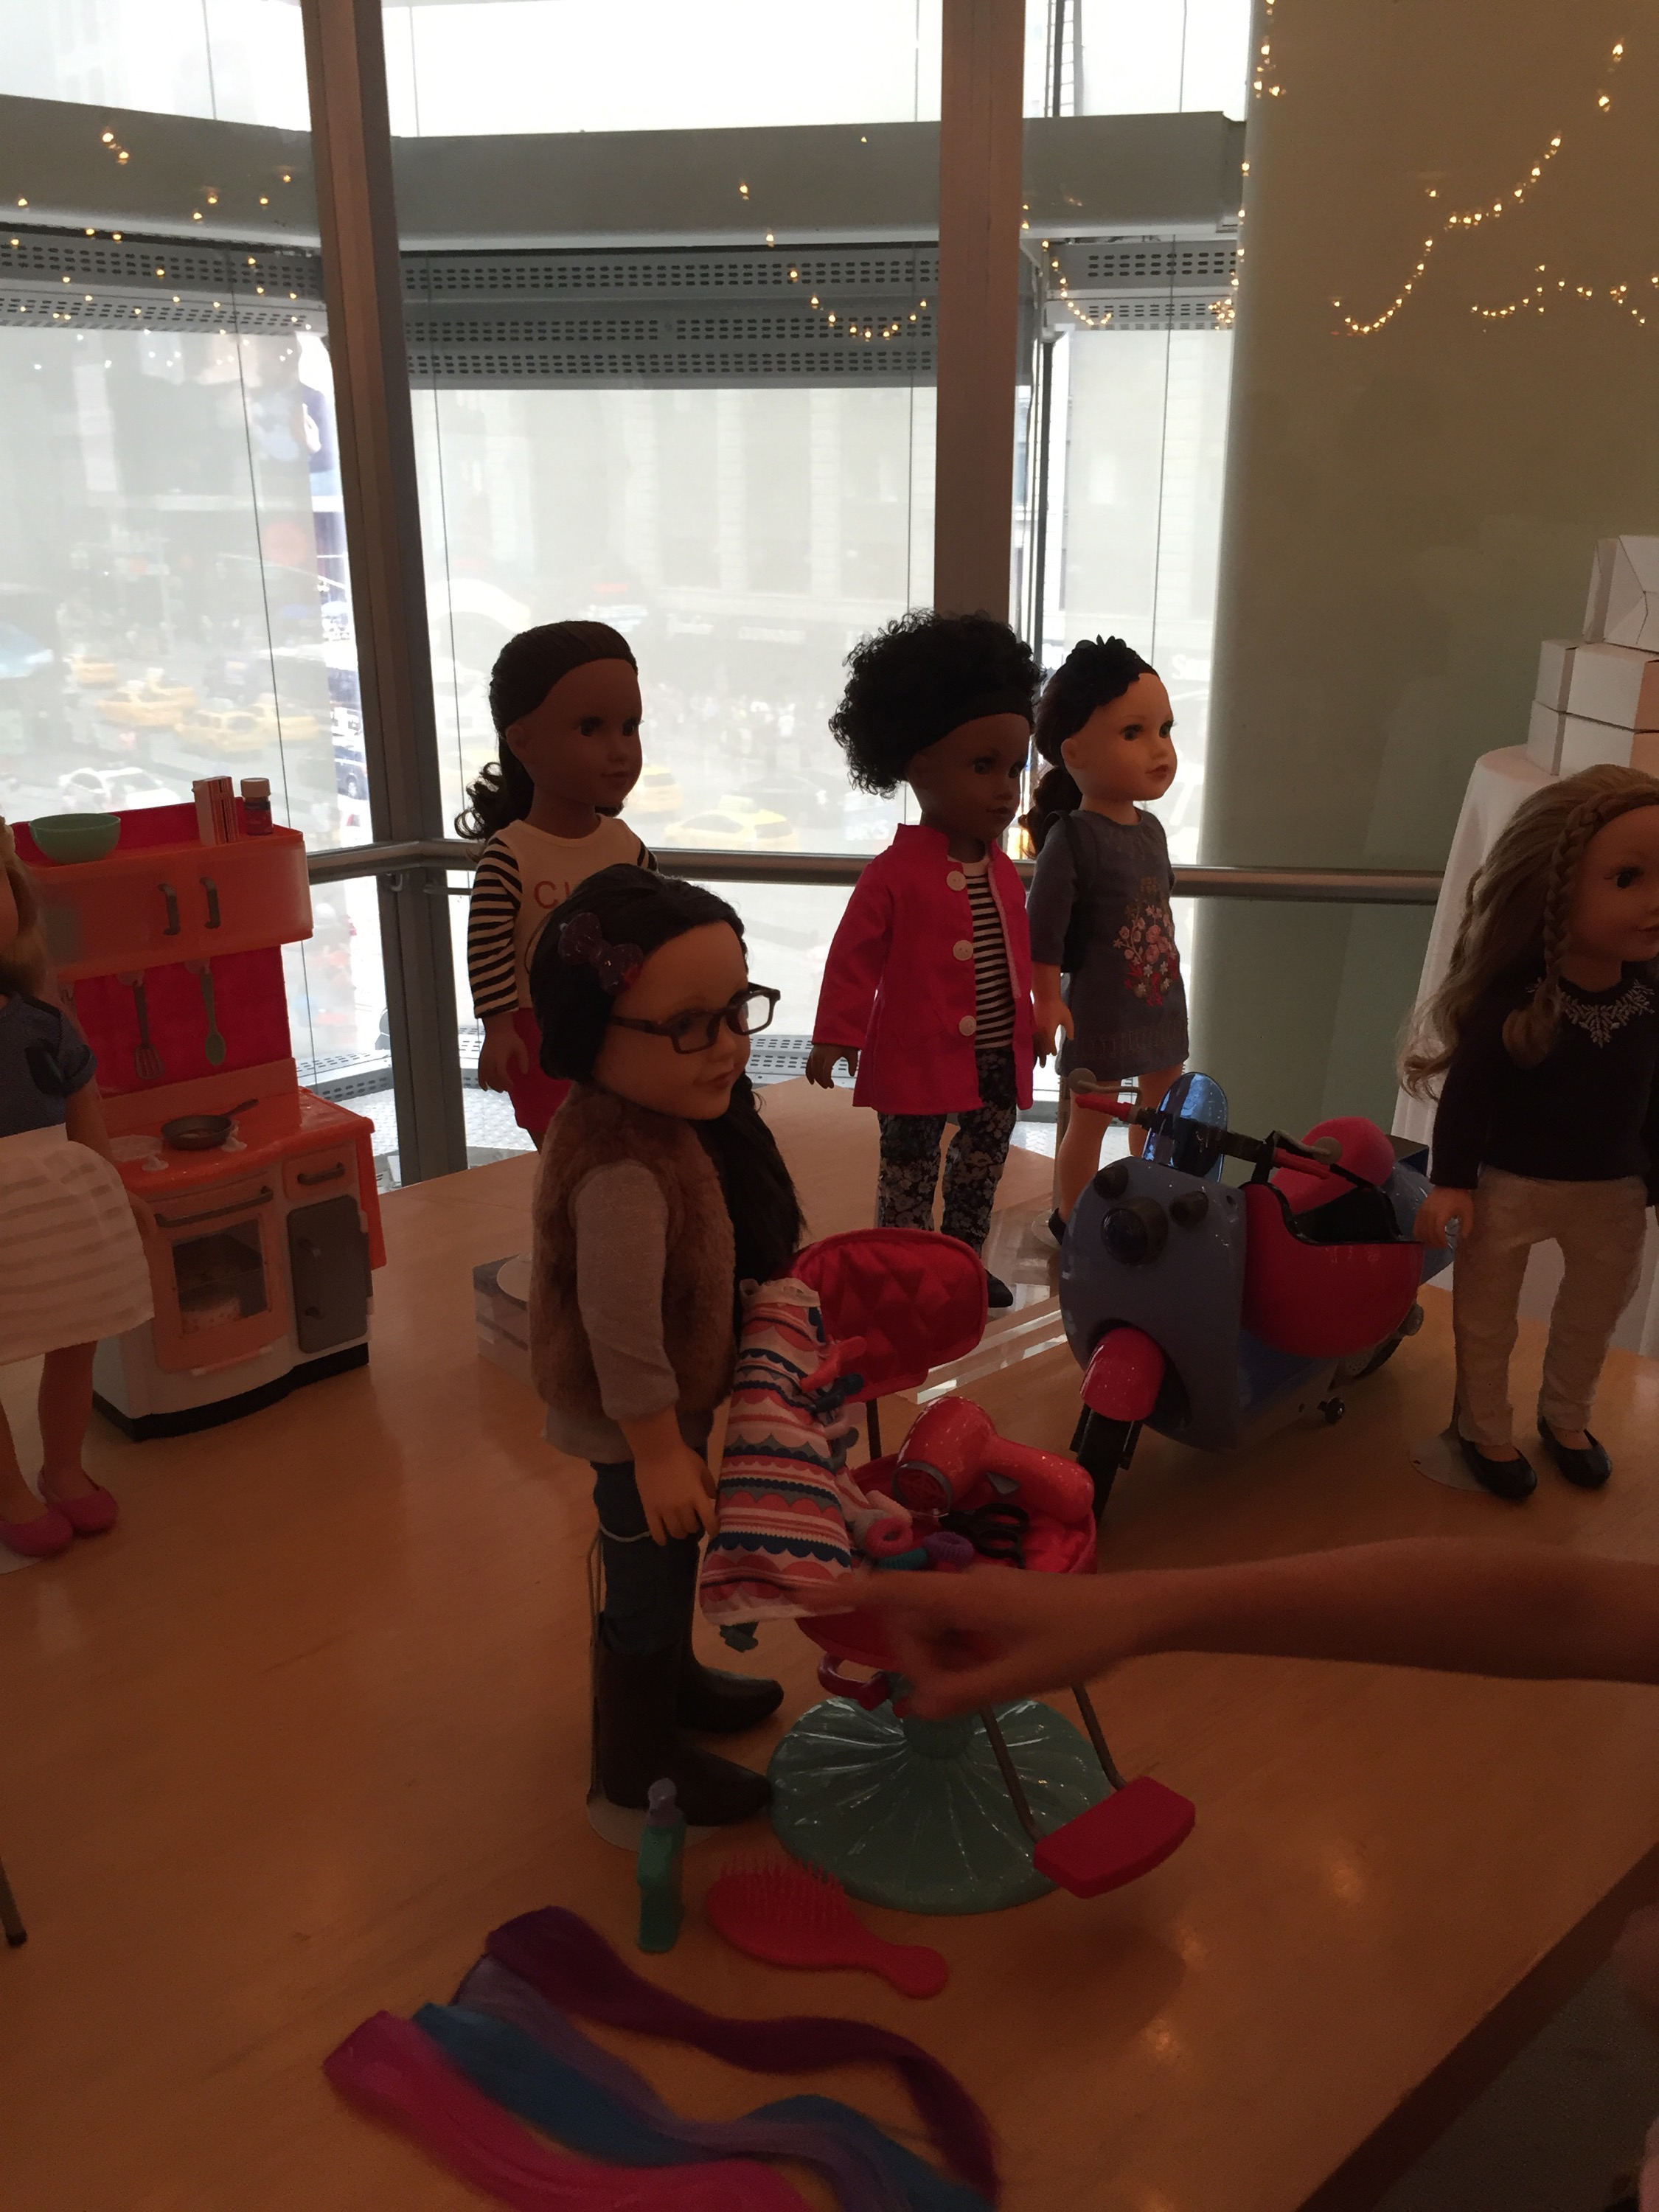 EXCLUSIVE JOURNEY GIRLS ITALY INSPIRED DOLL COLLECTION AT TOYS R US